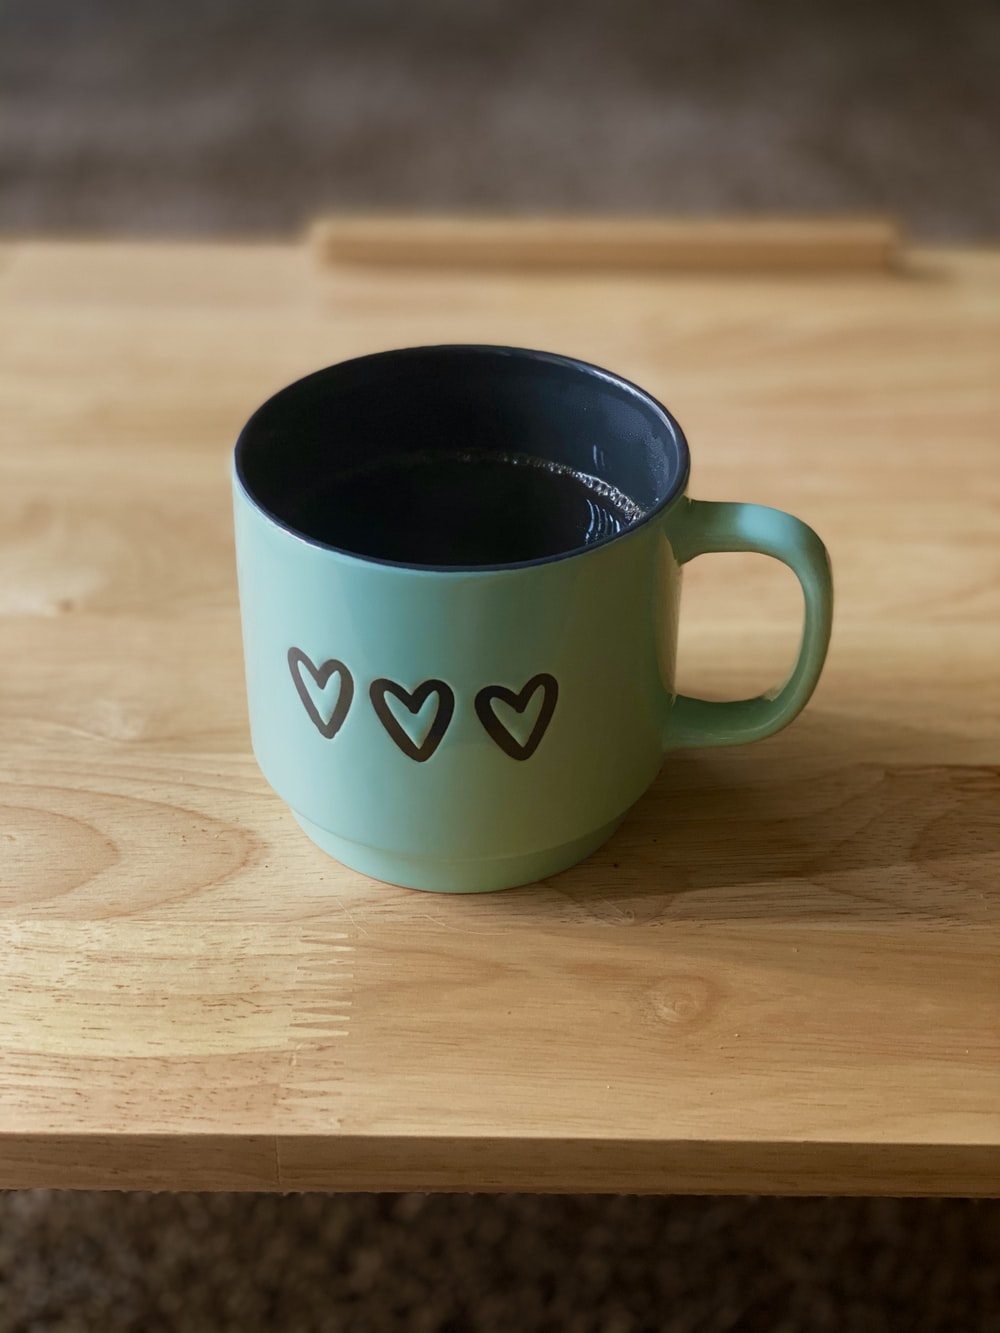 white and green ceramic mug on brown wooden table